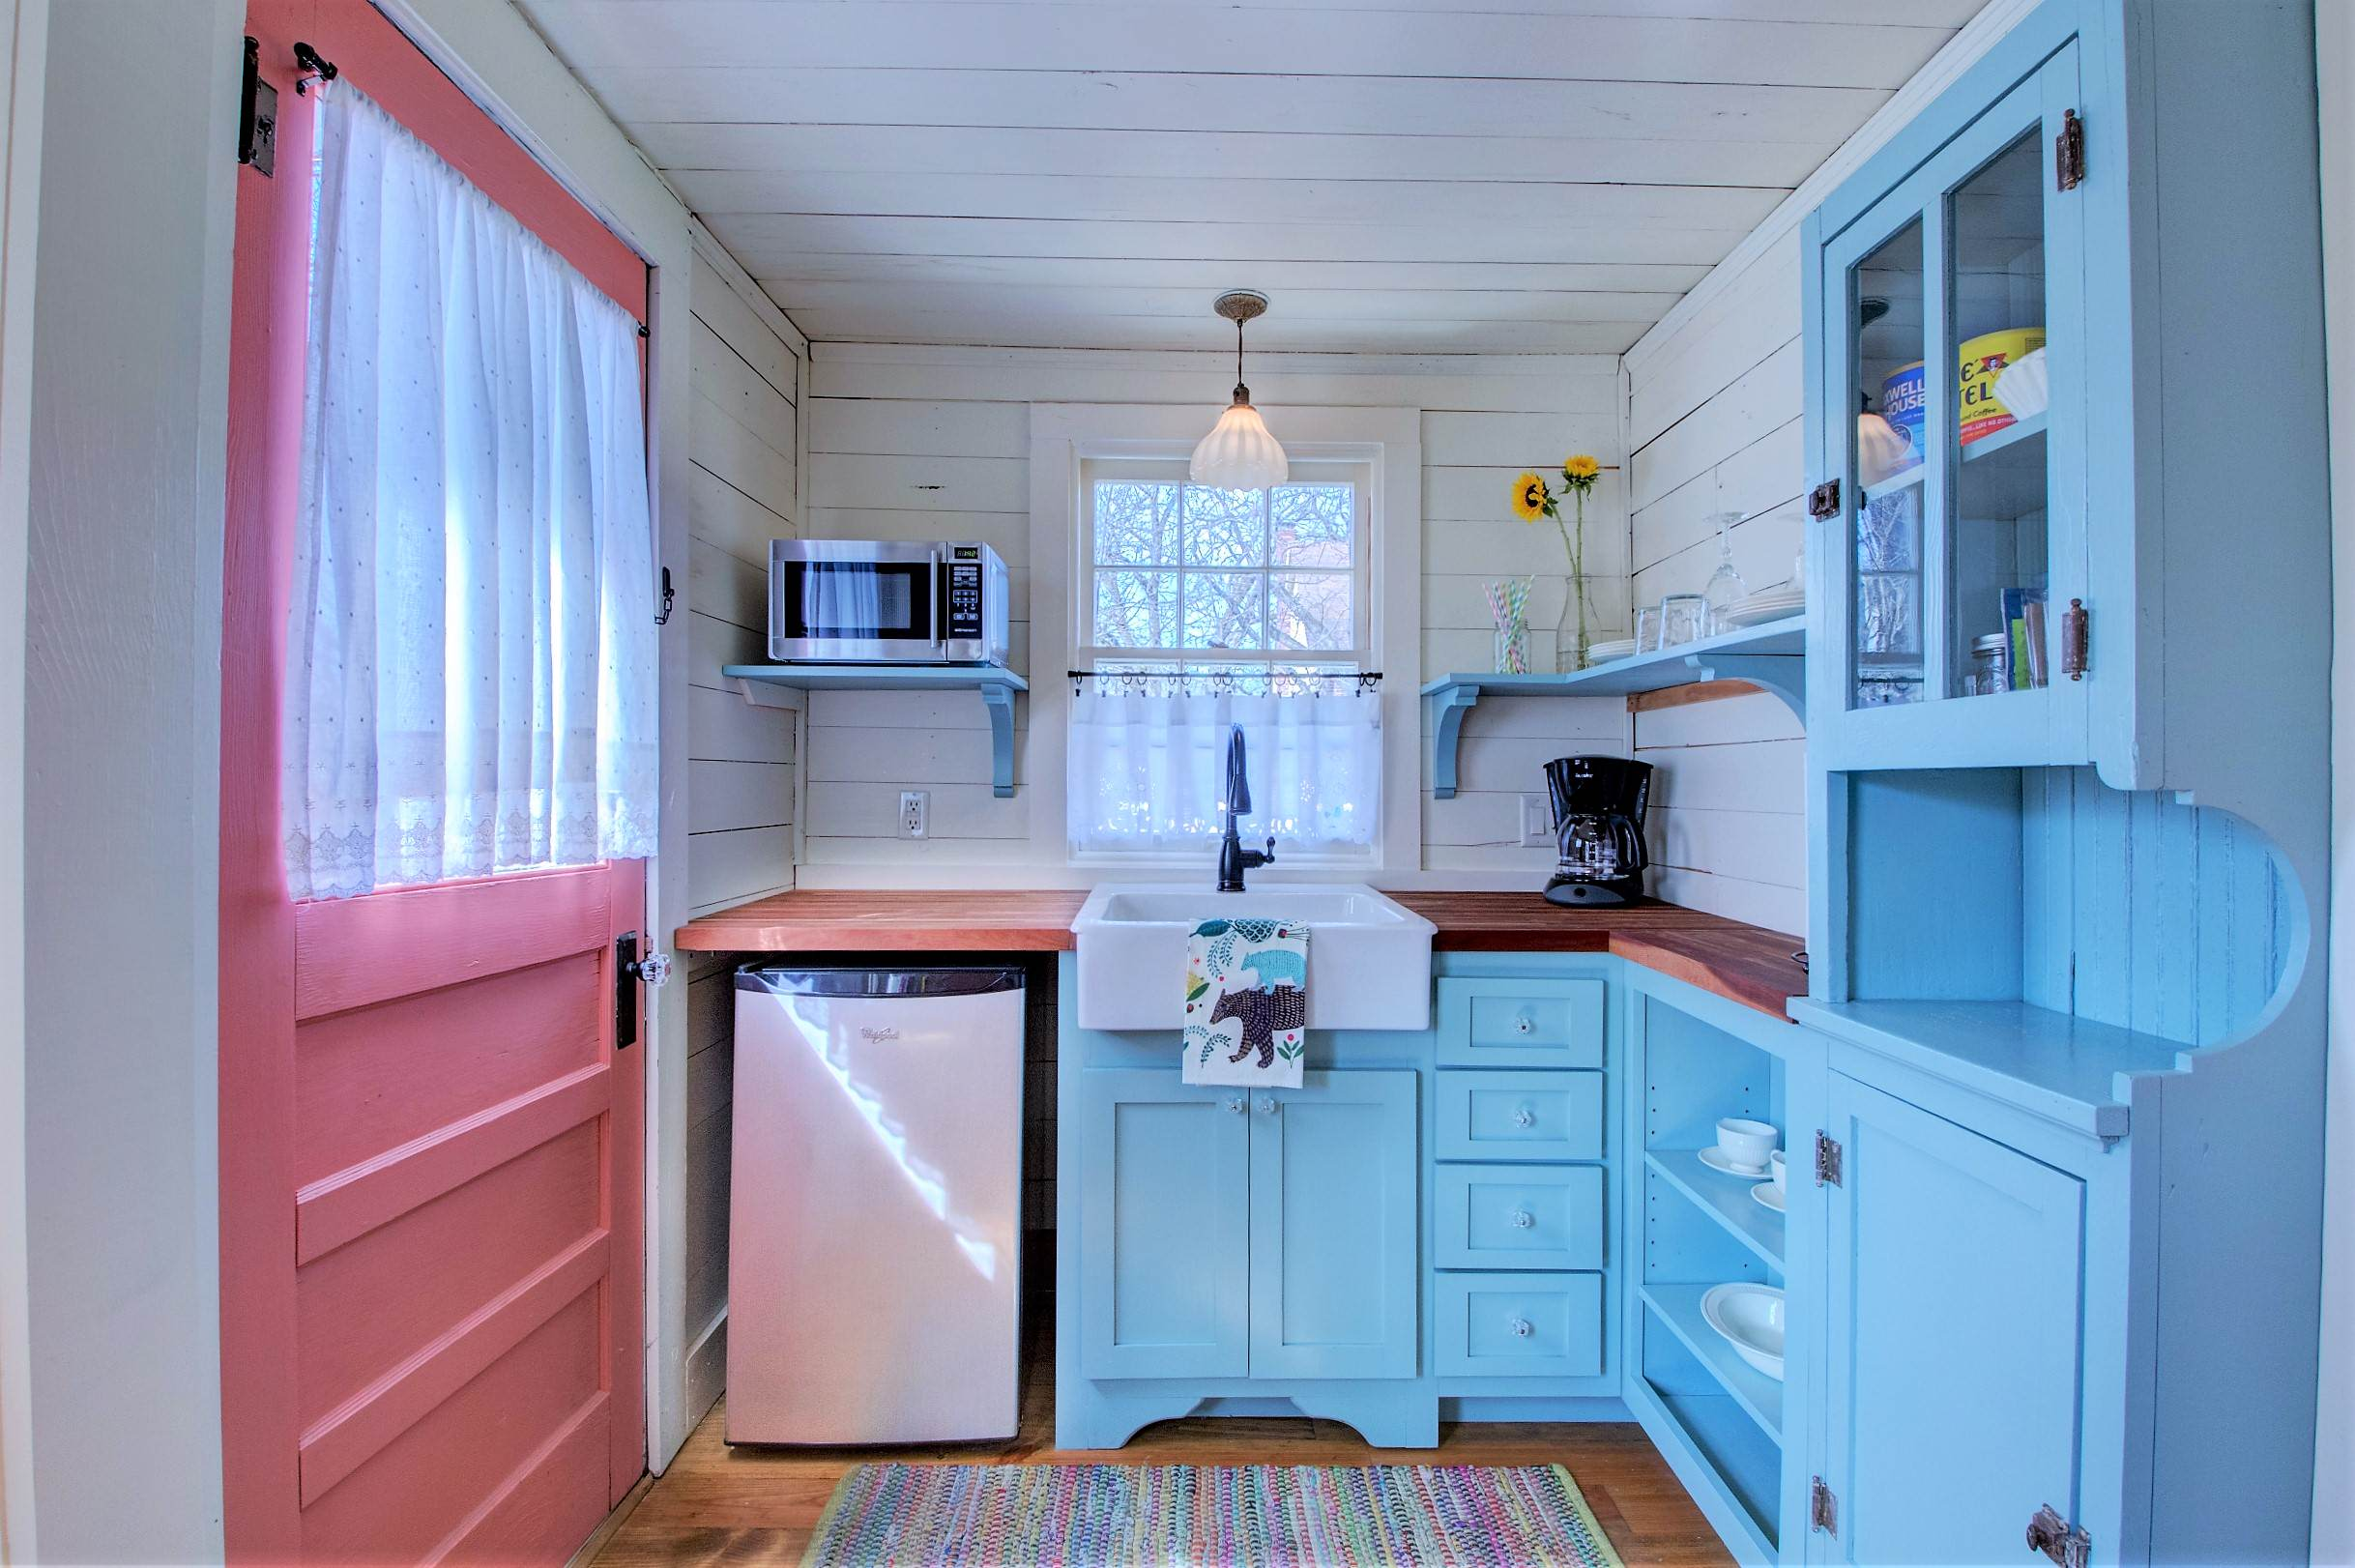 75 Beautiful Small Purple Kitchen Pictures Ideas April 2021 Houzz